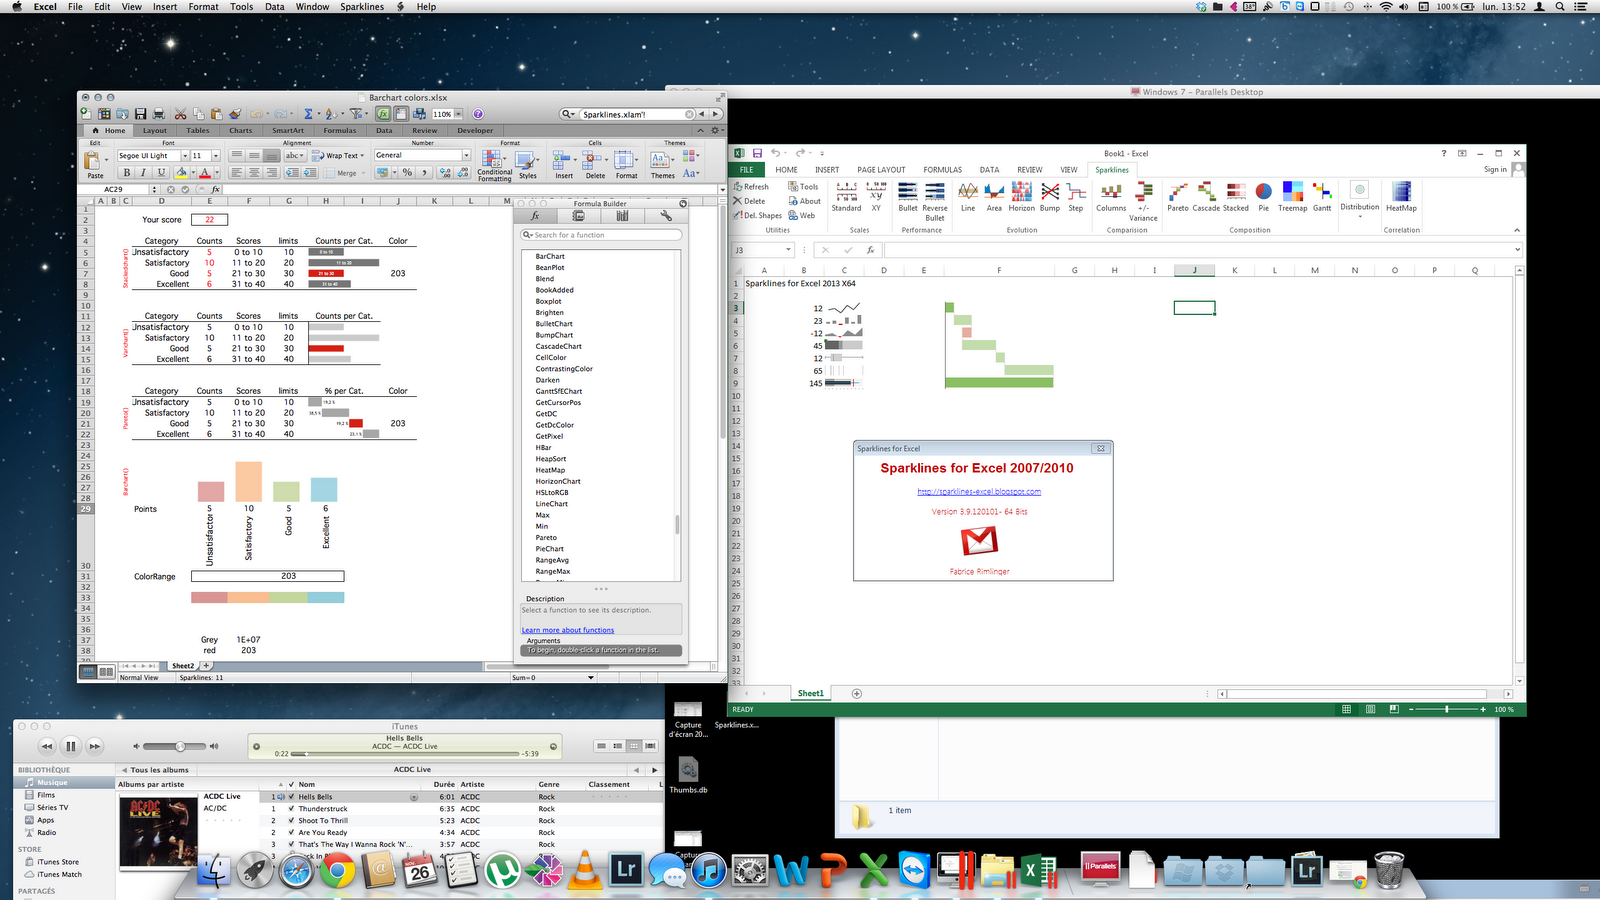 Mac Office 2011 Gratuit Sparklines For Excel Sfe For Office 2011 Mac And Office